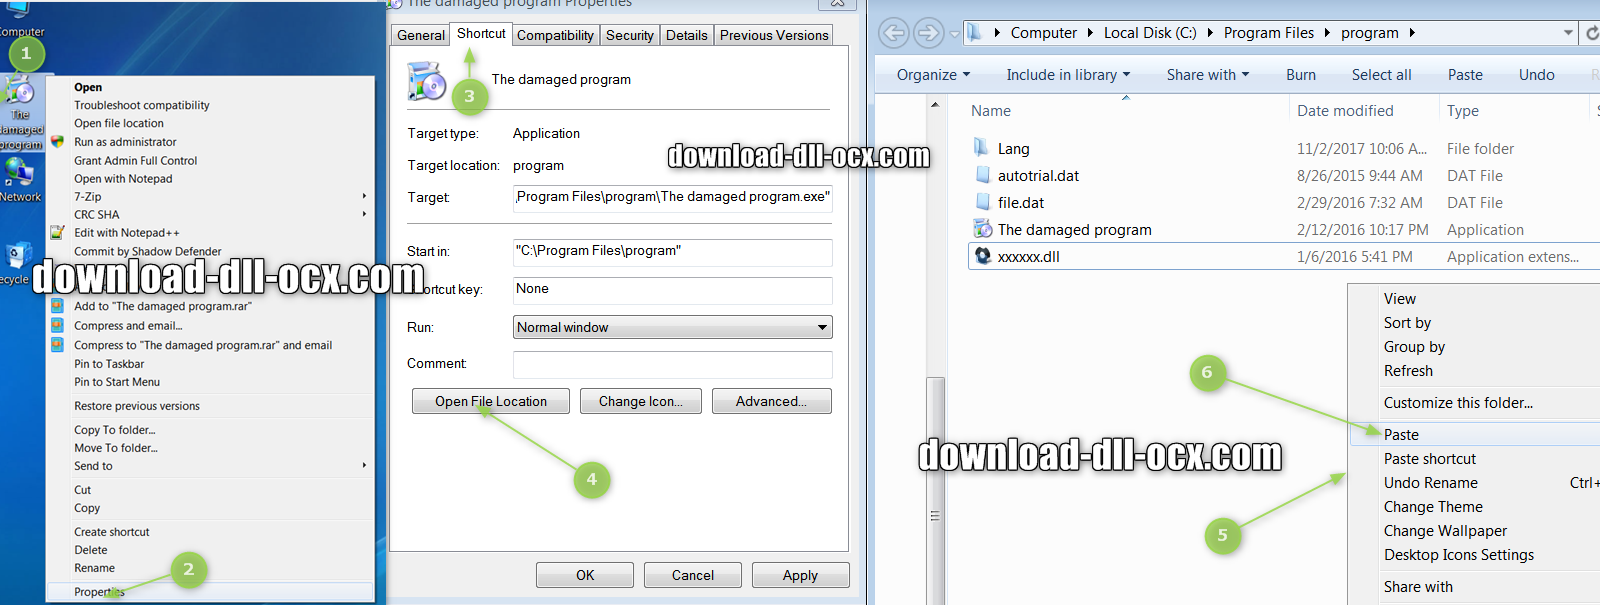 how to install ipevlpid.dll file? for fix missing